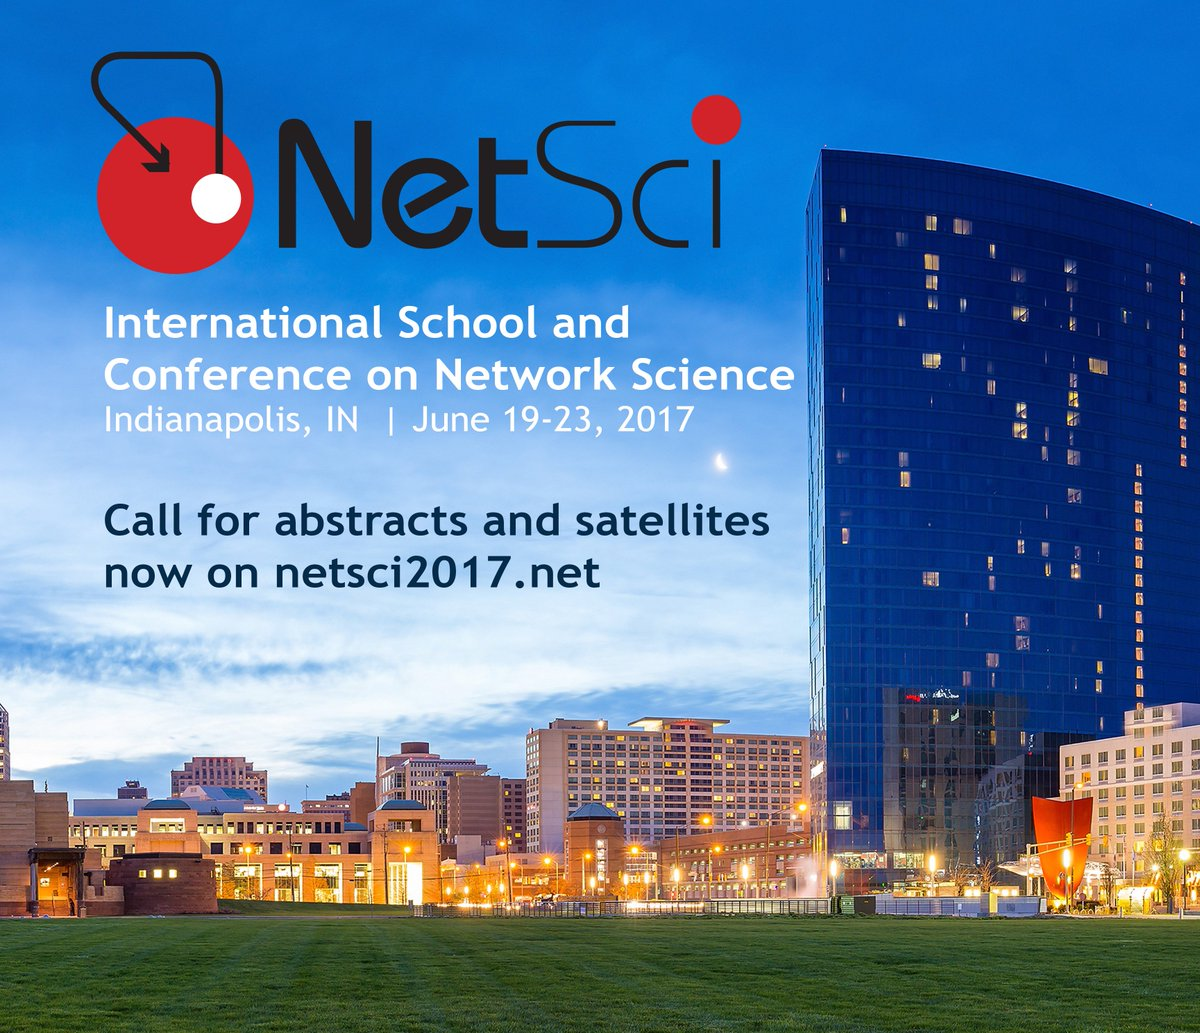 Get ready for NetSci 2017 in Indianapolis, Indiana